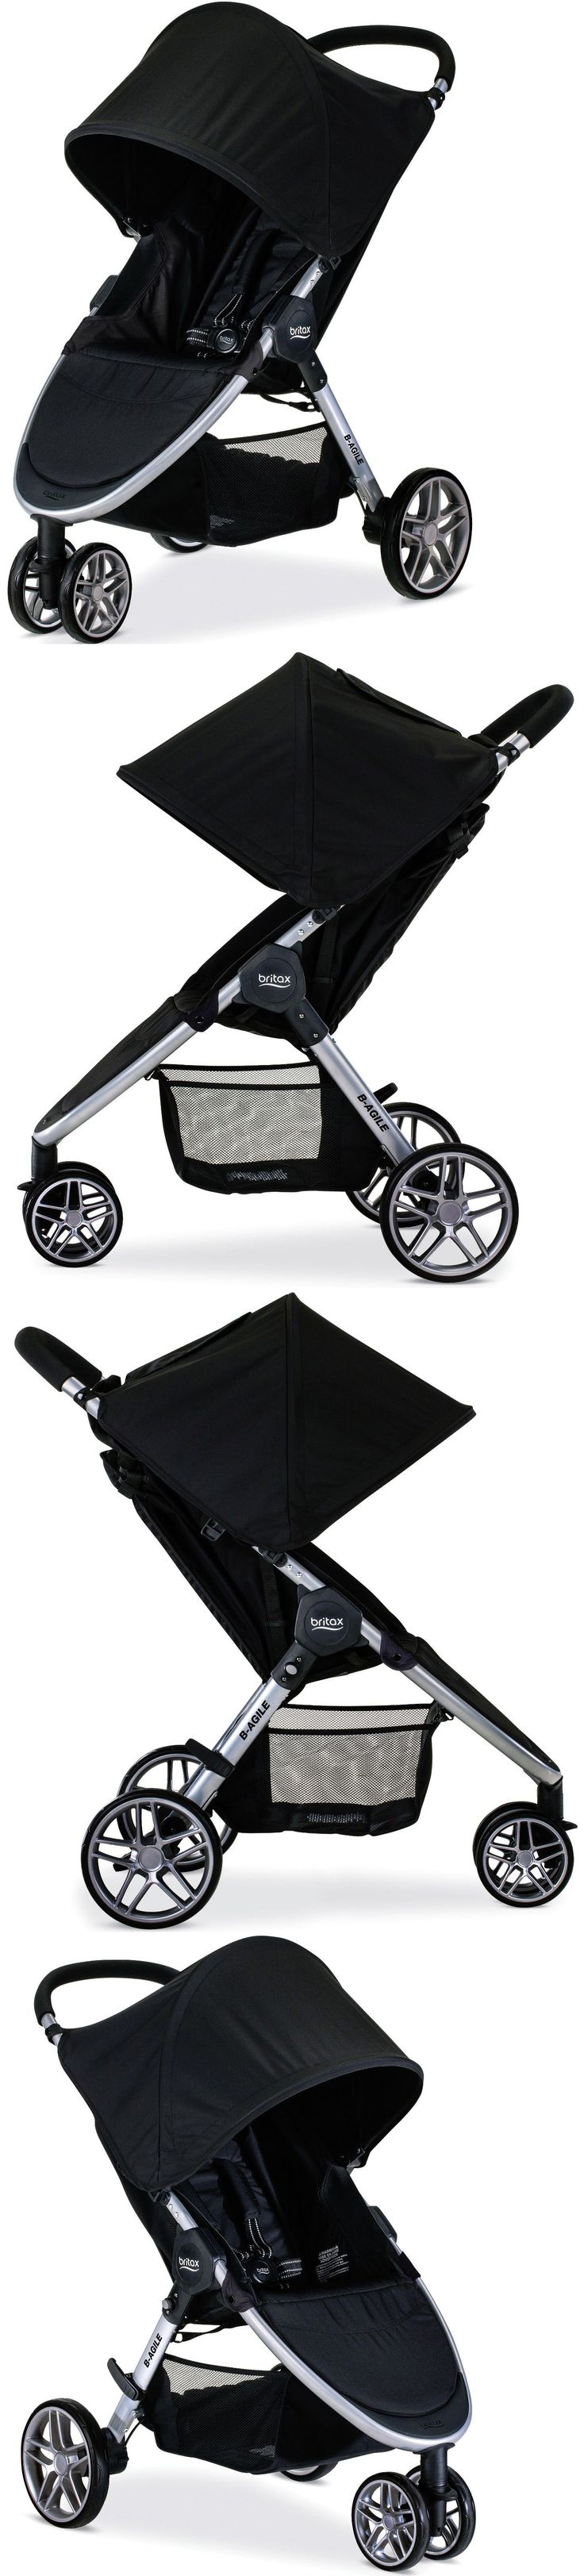 Stroller Accessories 180911: Britax B-Agile 3 Lightweight One Hand Fold Single Stroller Black New 2017 -> BUY IT NOW ONLY: $216 on eBay!